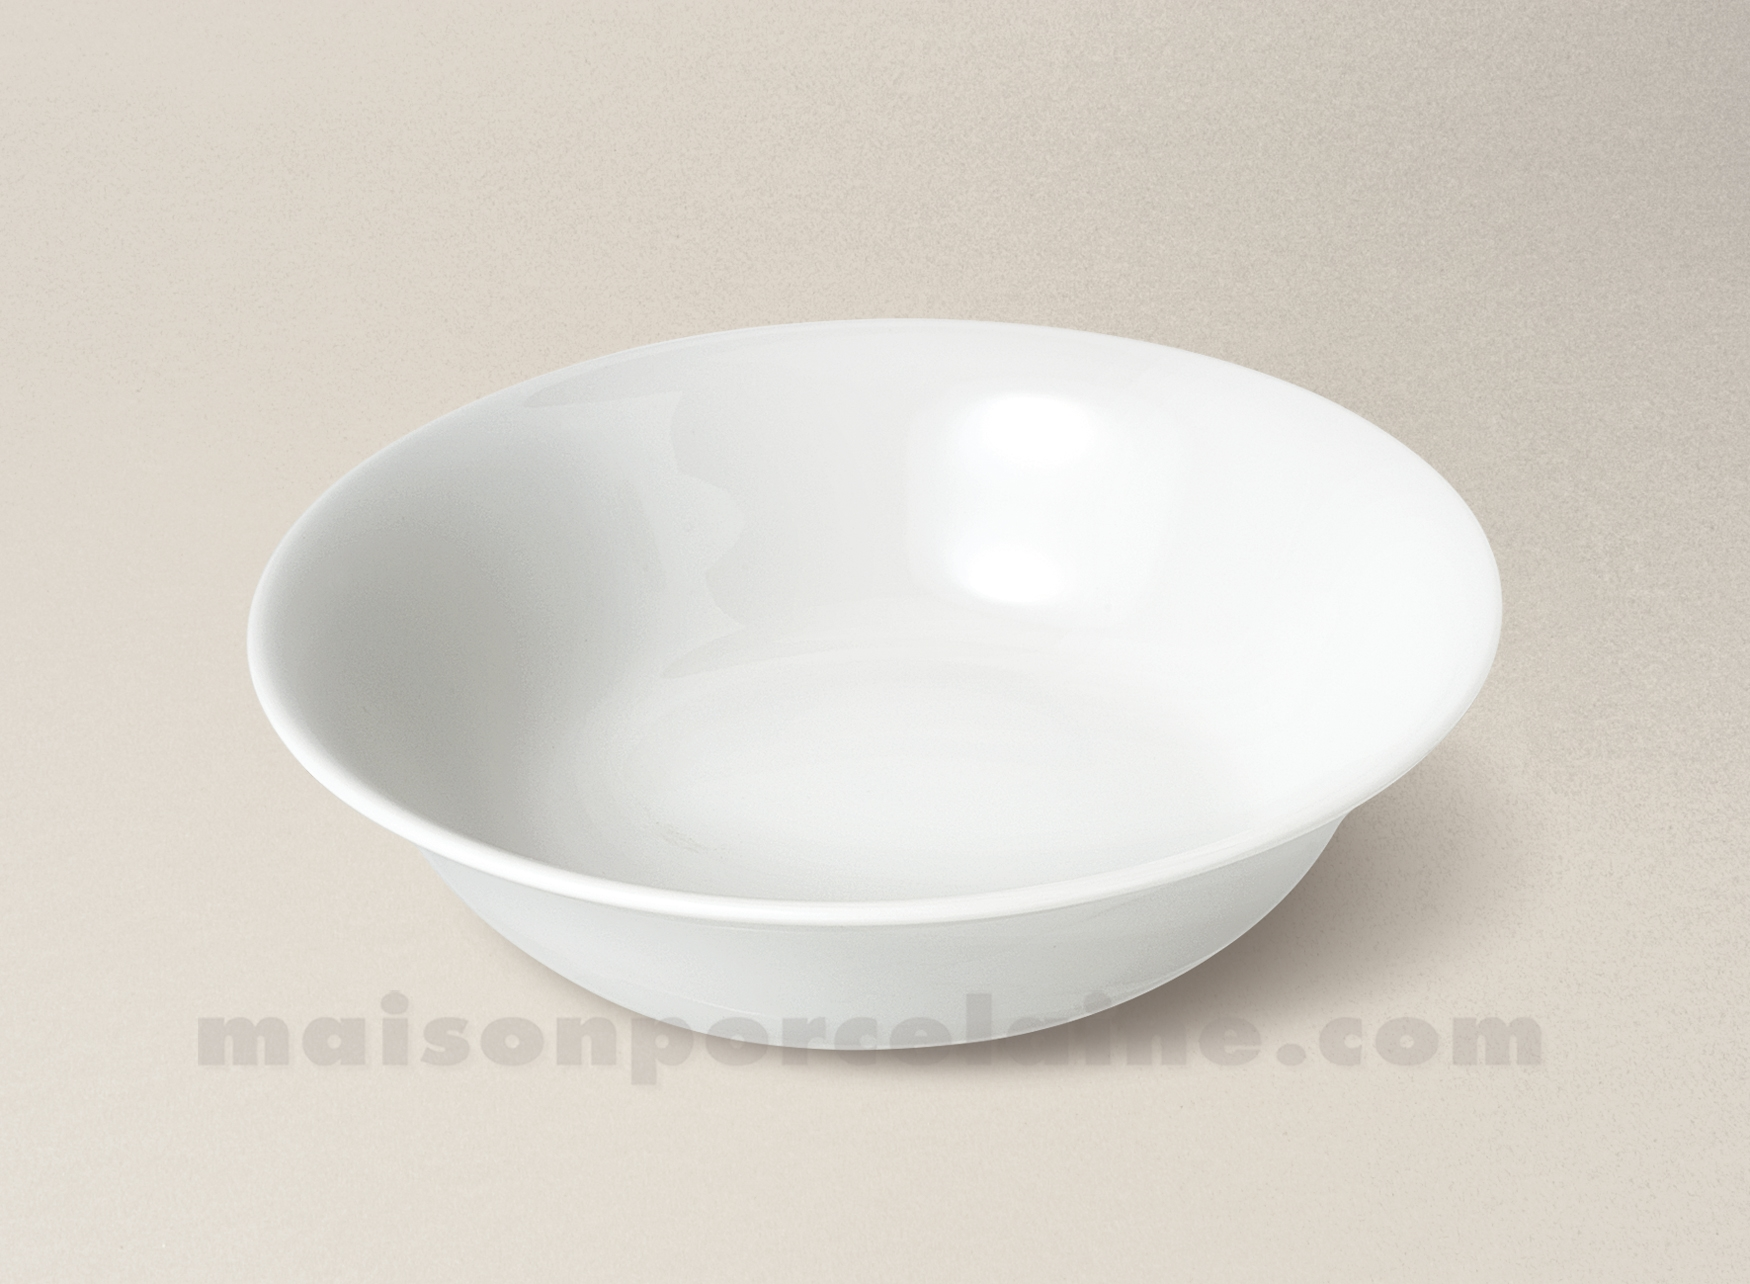 Bol salade cereales limoges porcelaine blanche empire d18 for Maison de la porcelaine